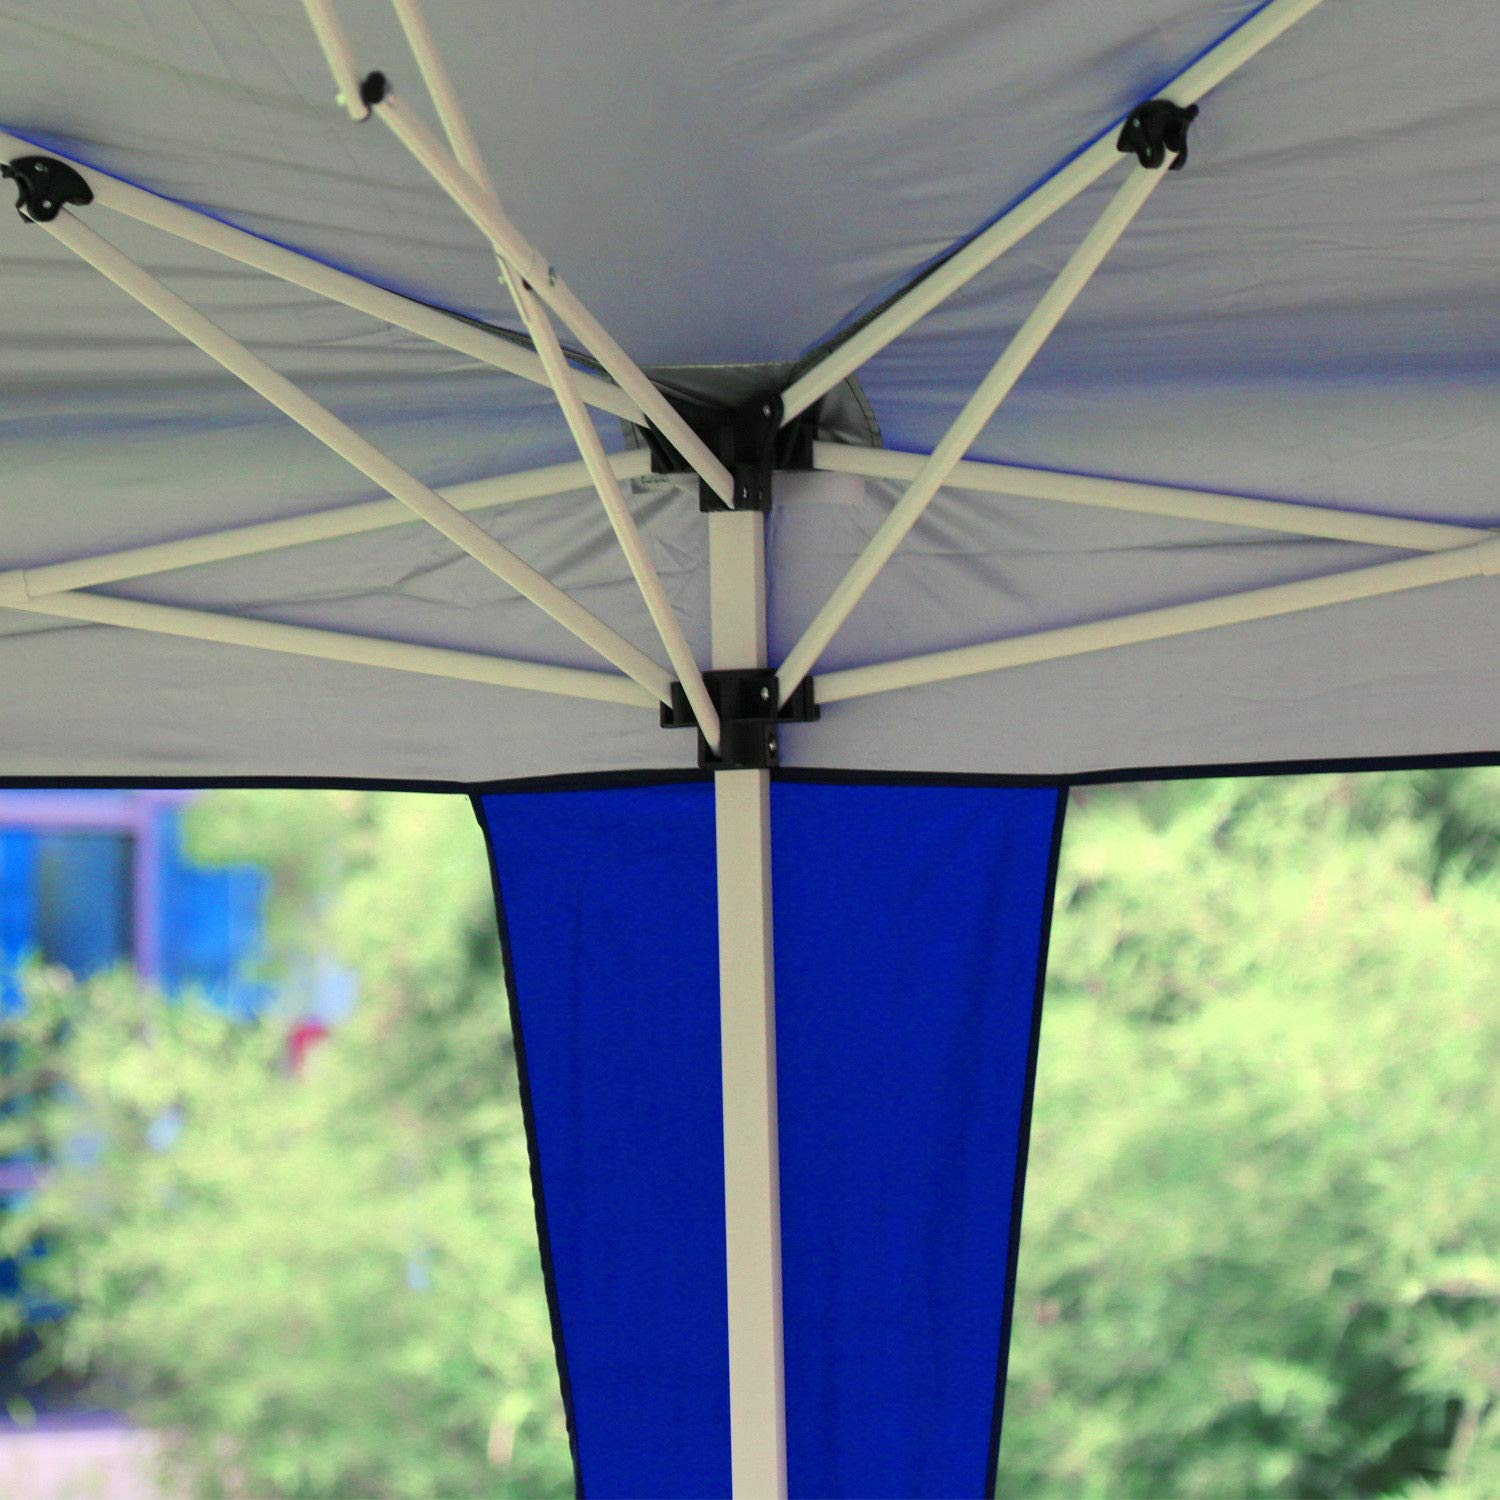 Kinbor Outdoor Portable Adjustable Instant Pop Up Gazebo Canopy Tent by Kinbor (Image #5)